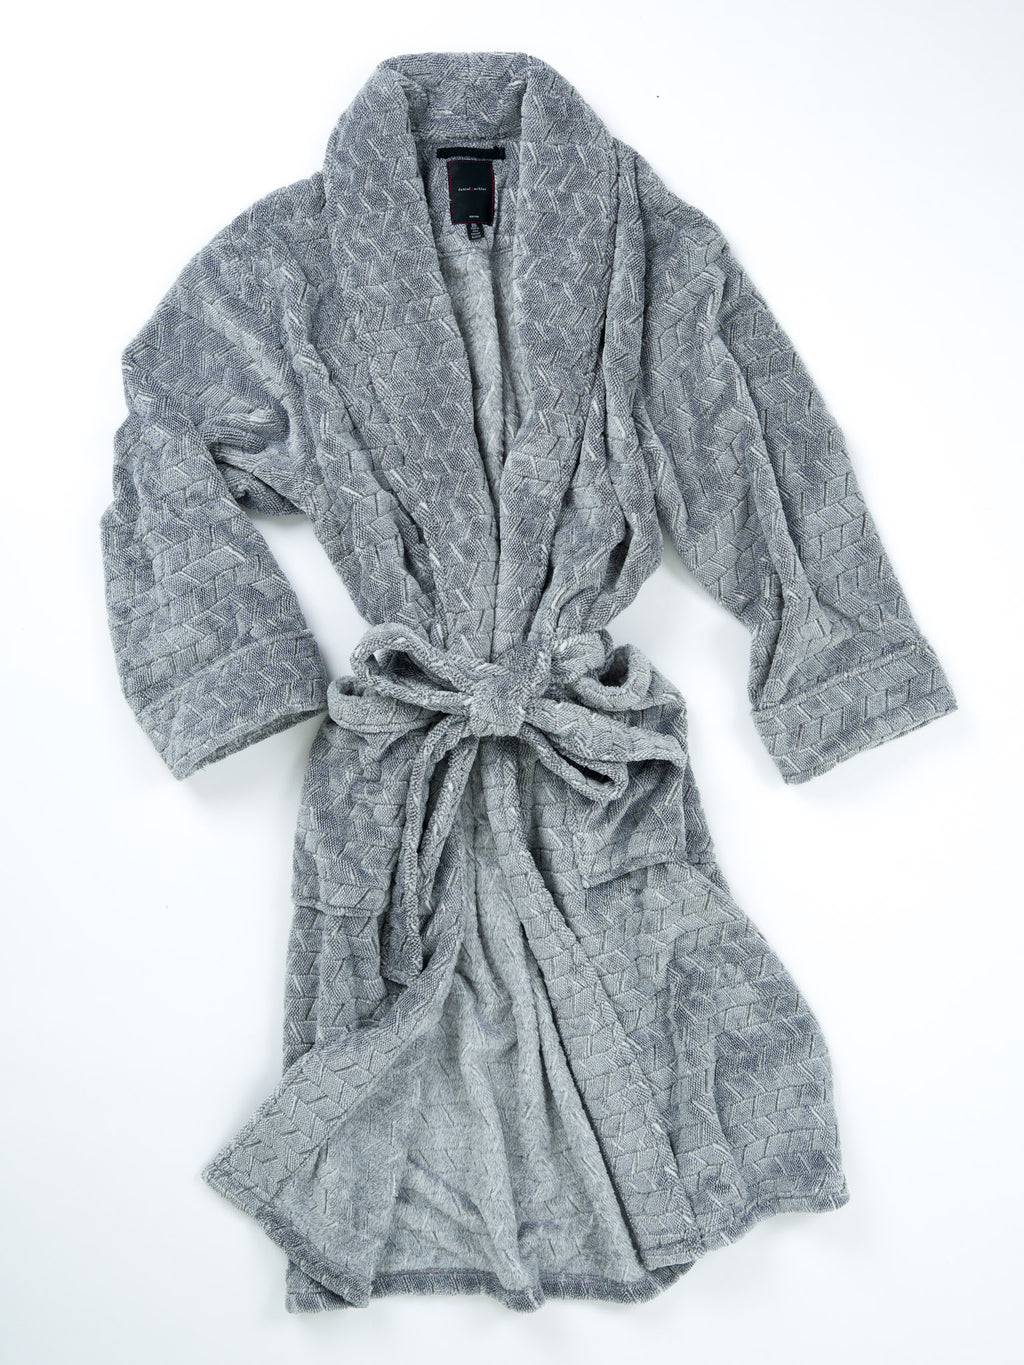 Plush Tiled Heather Jacquard Robe - 4 colors available